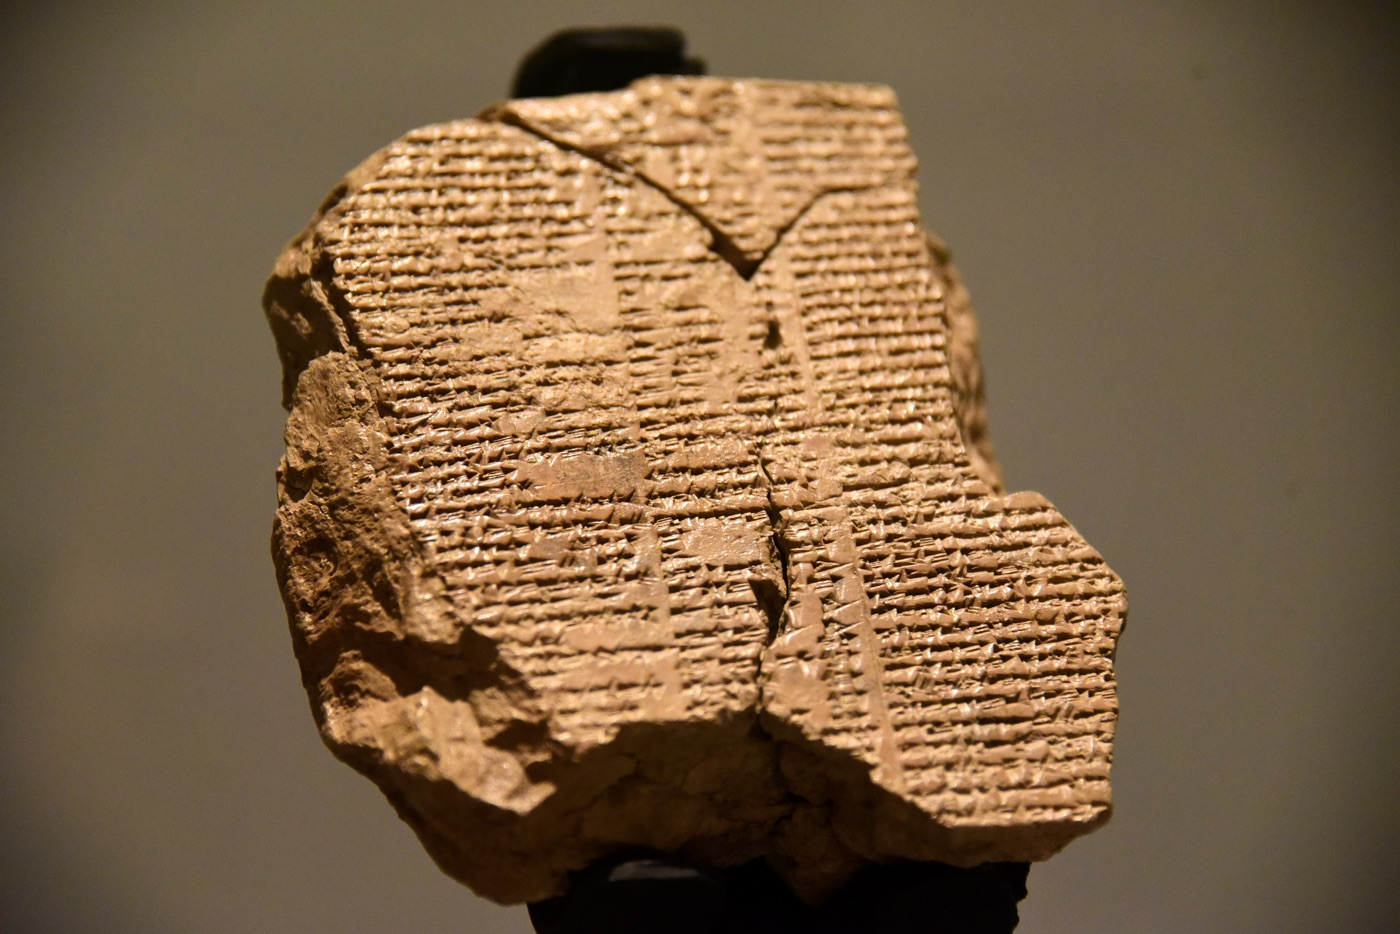 Tablet V of the Epic of Gilgamesh, The Sulaymaniyah Museum, Iraq